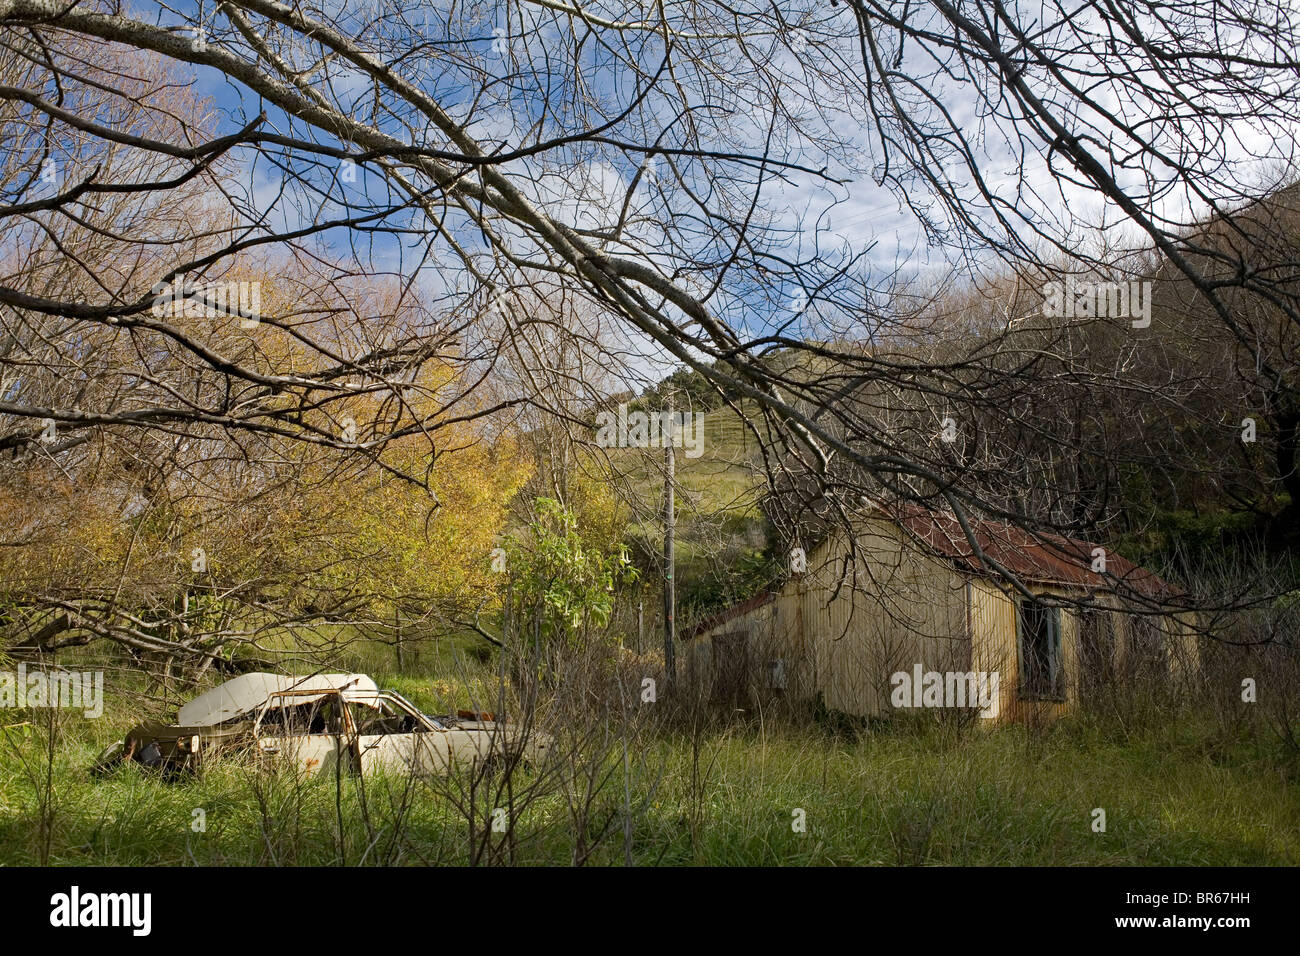 An abandoned car and house in the East Cape town of Tokomaru Bay, New Zealand. - Stock Image